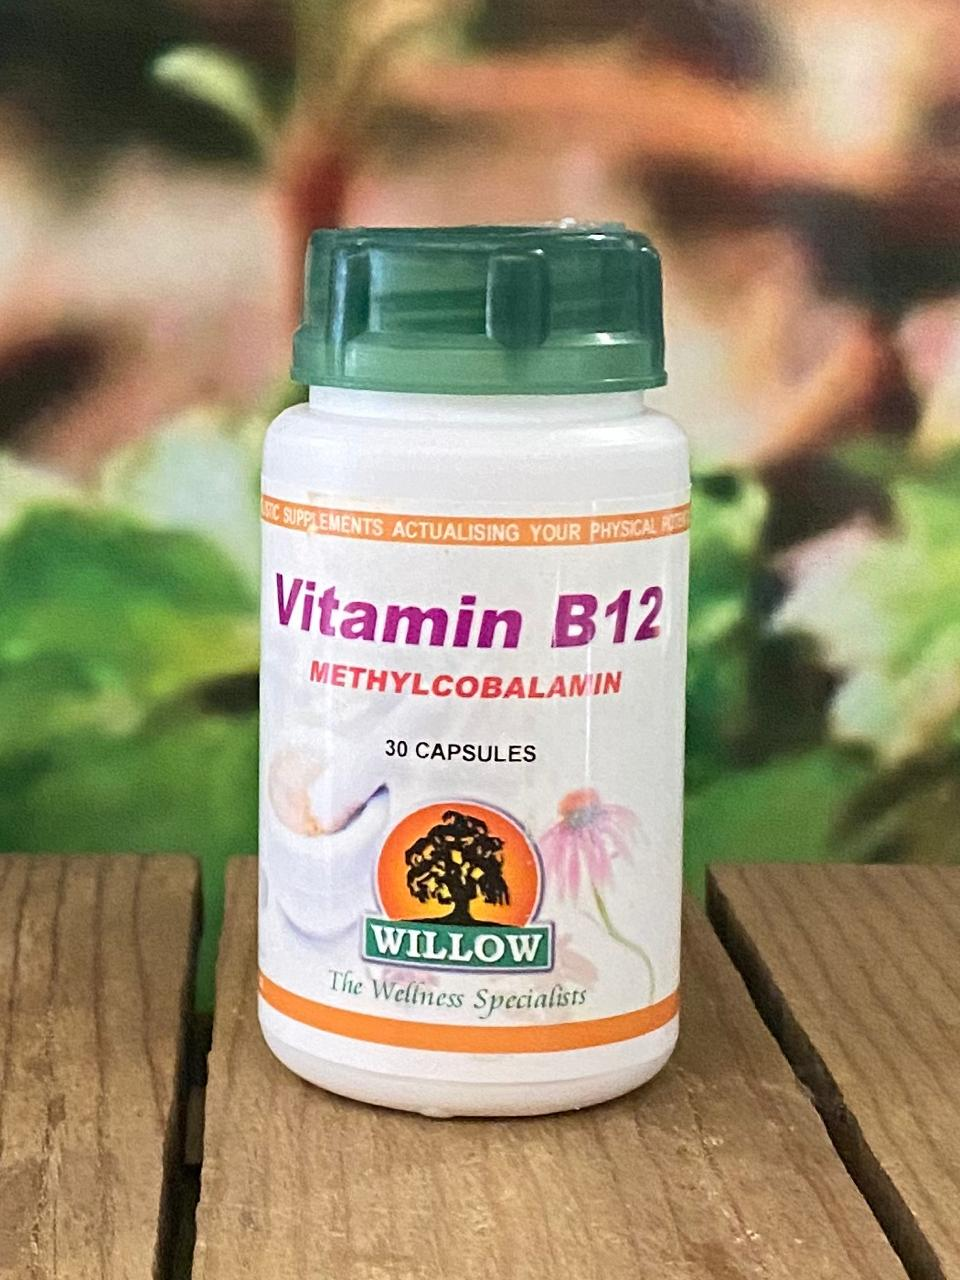 Willow Vit B12 Methyl Cobalamin 30 capsules